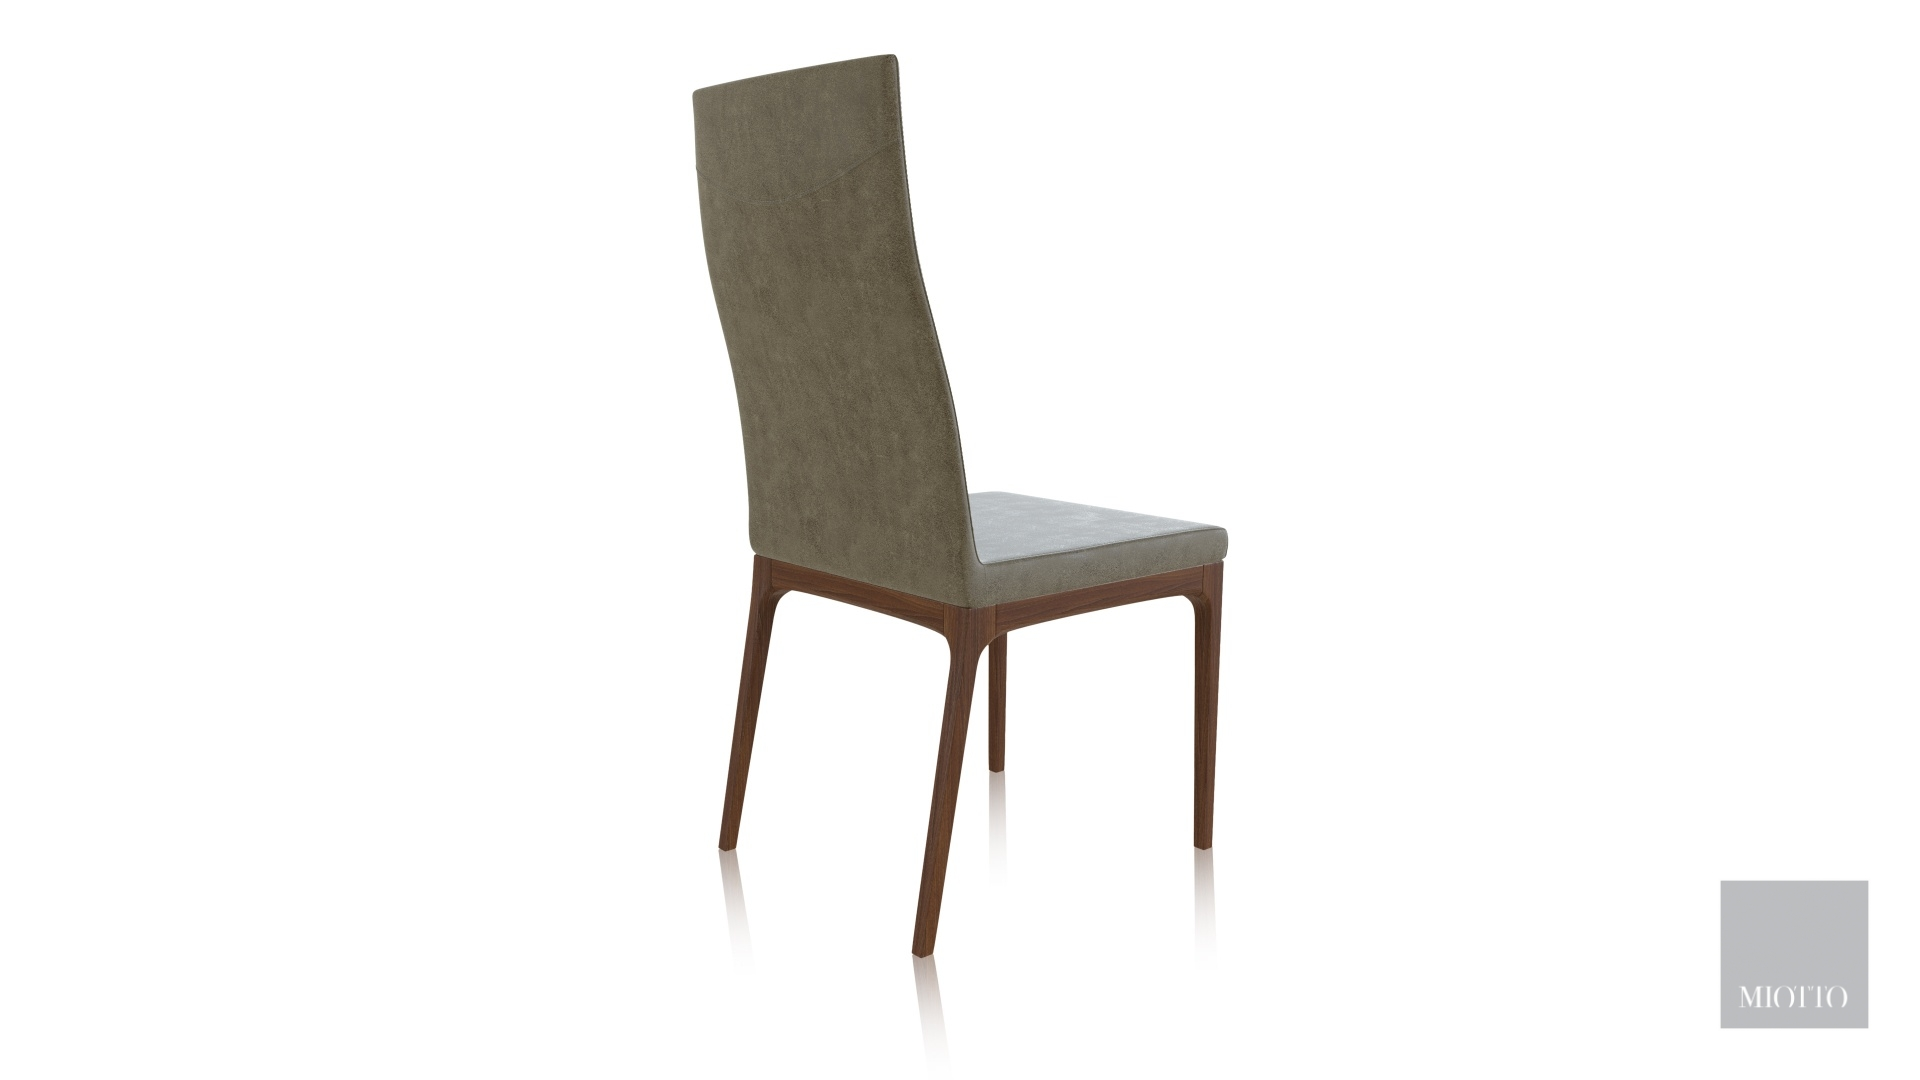 miotto_lanzo DC light grey back T miotto dining chair furniture